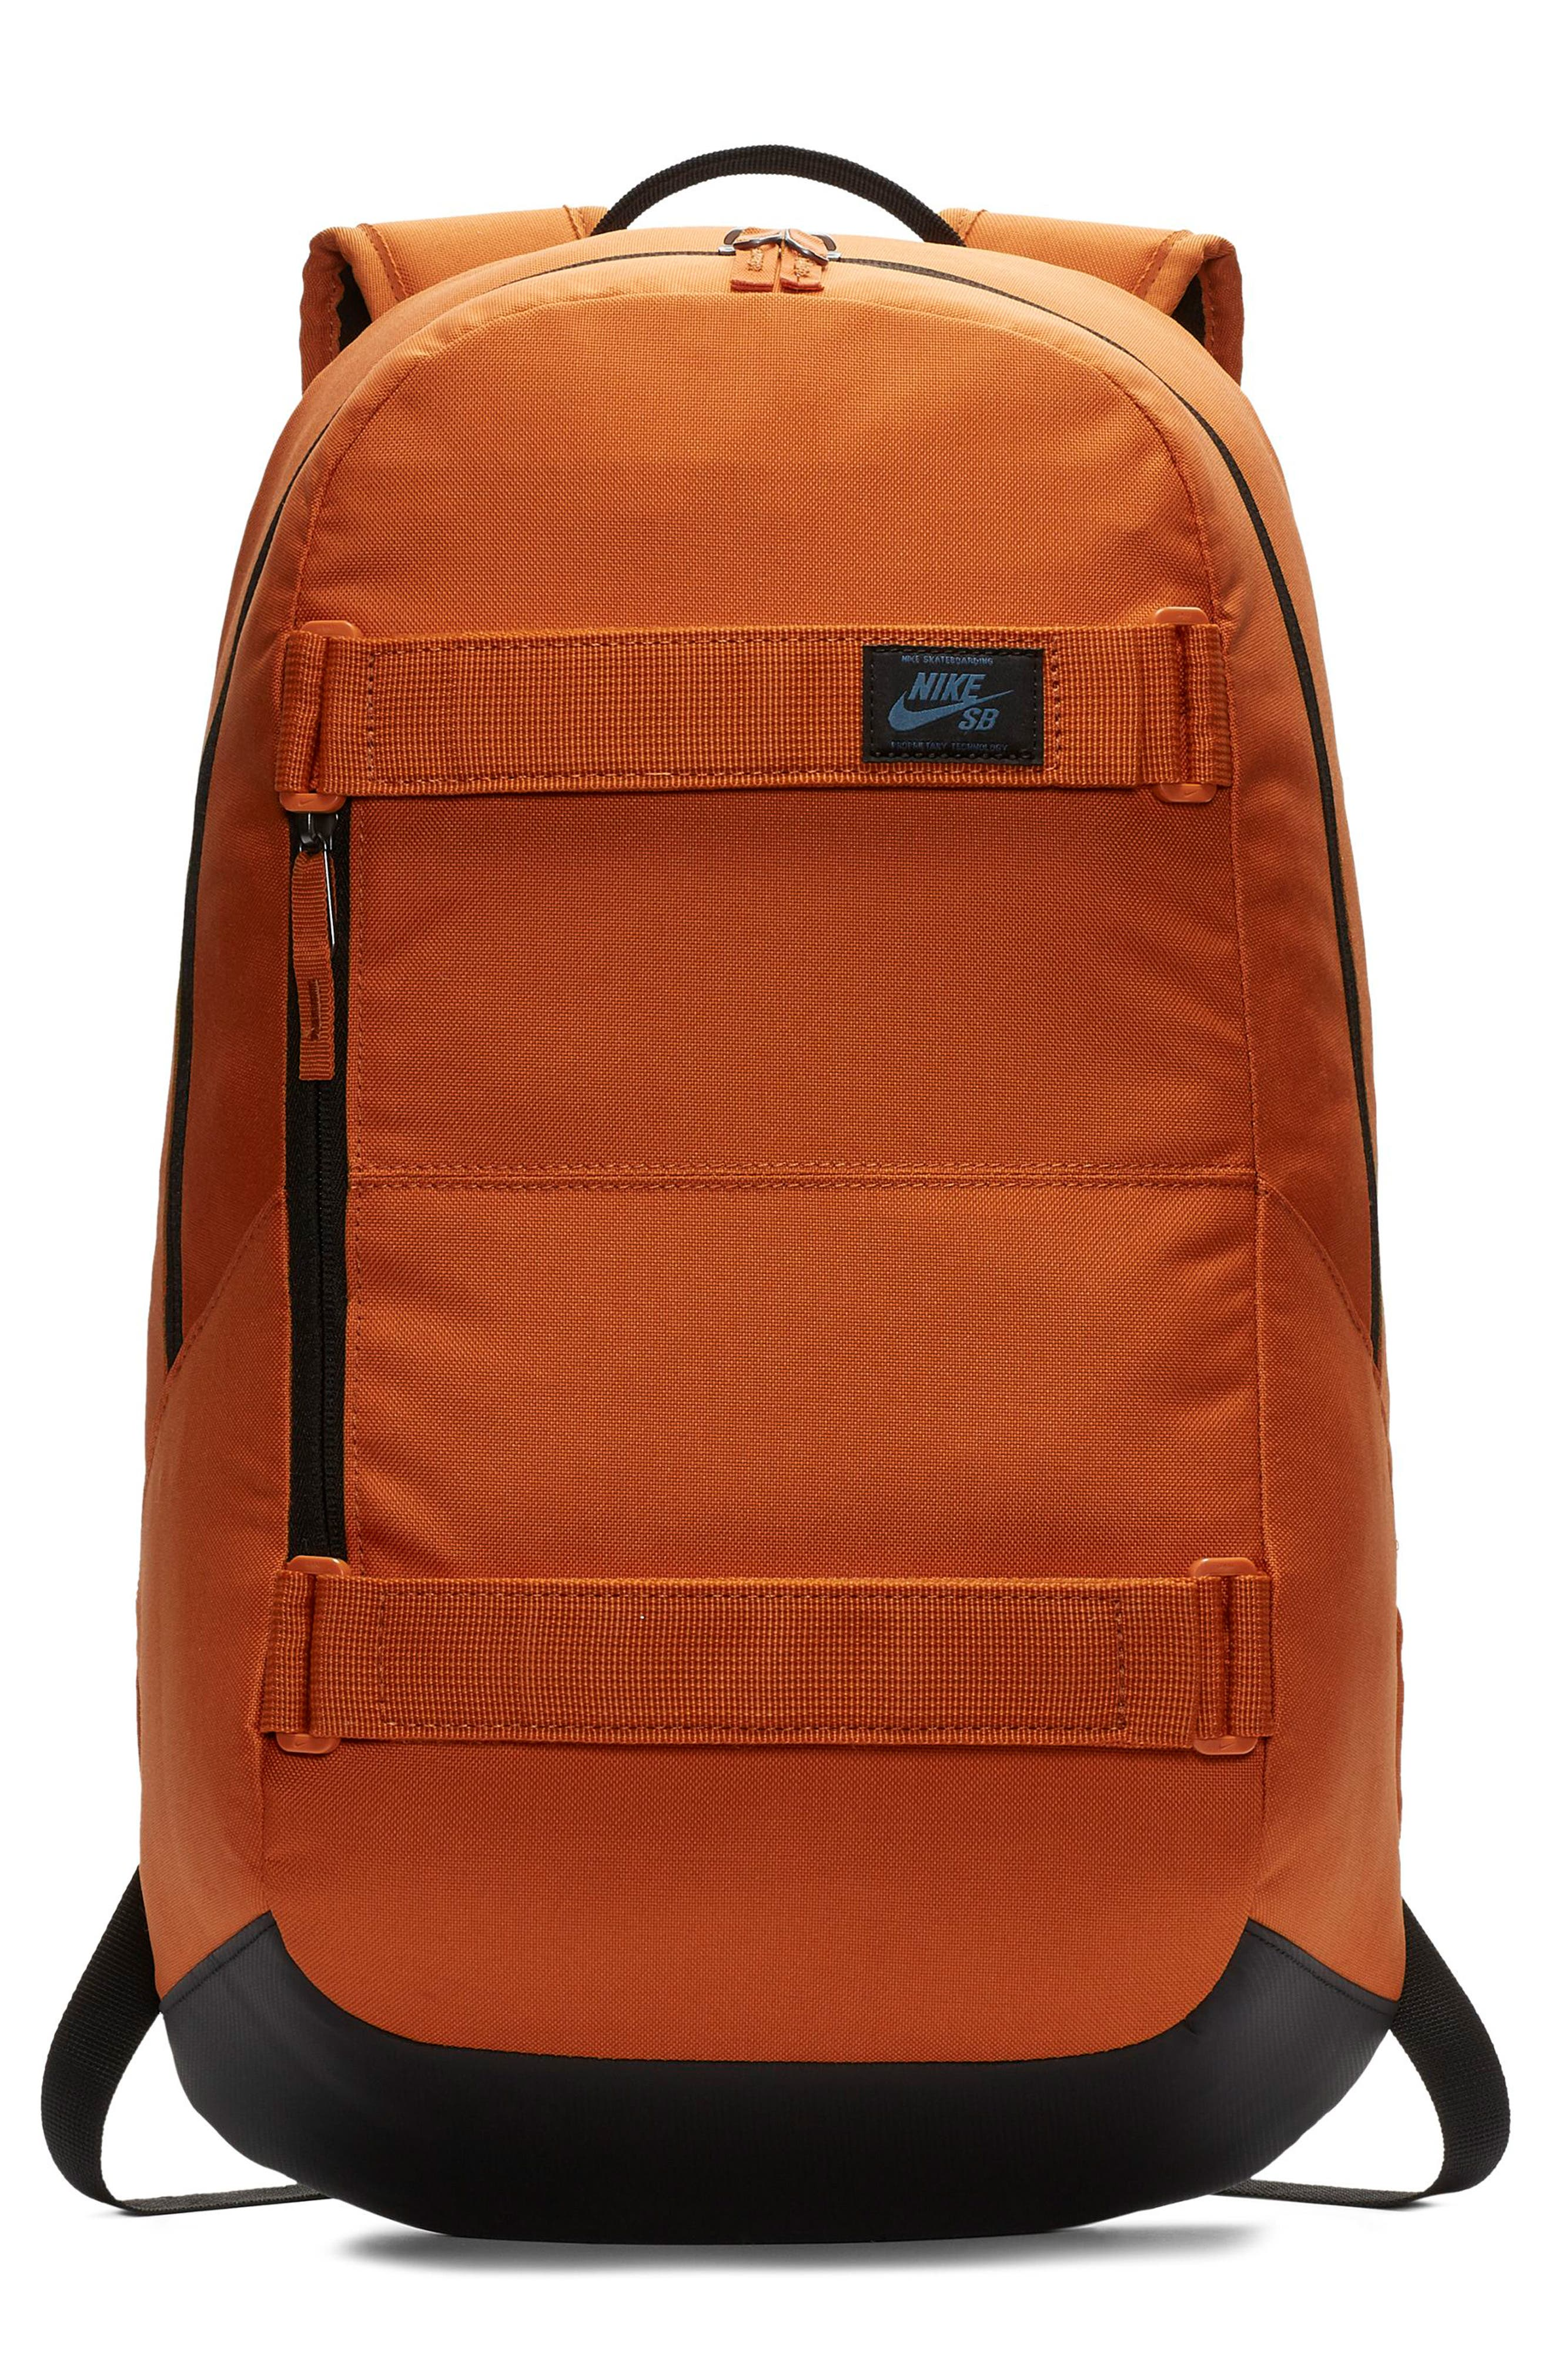 NIKE SB Courthouse Backpack, Main, color, CINDER ORANGE